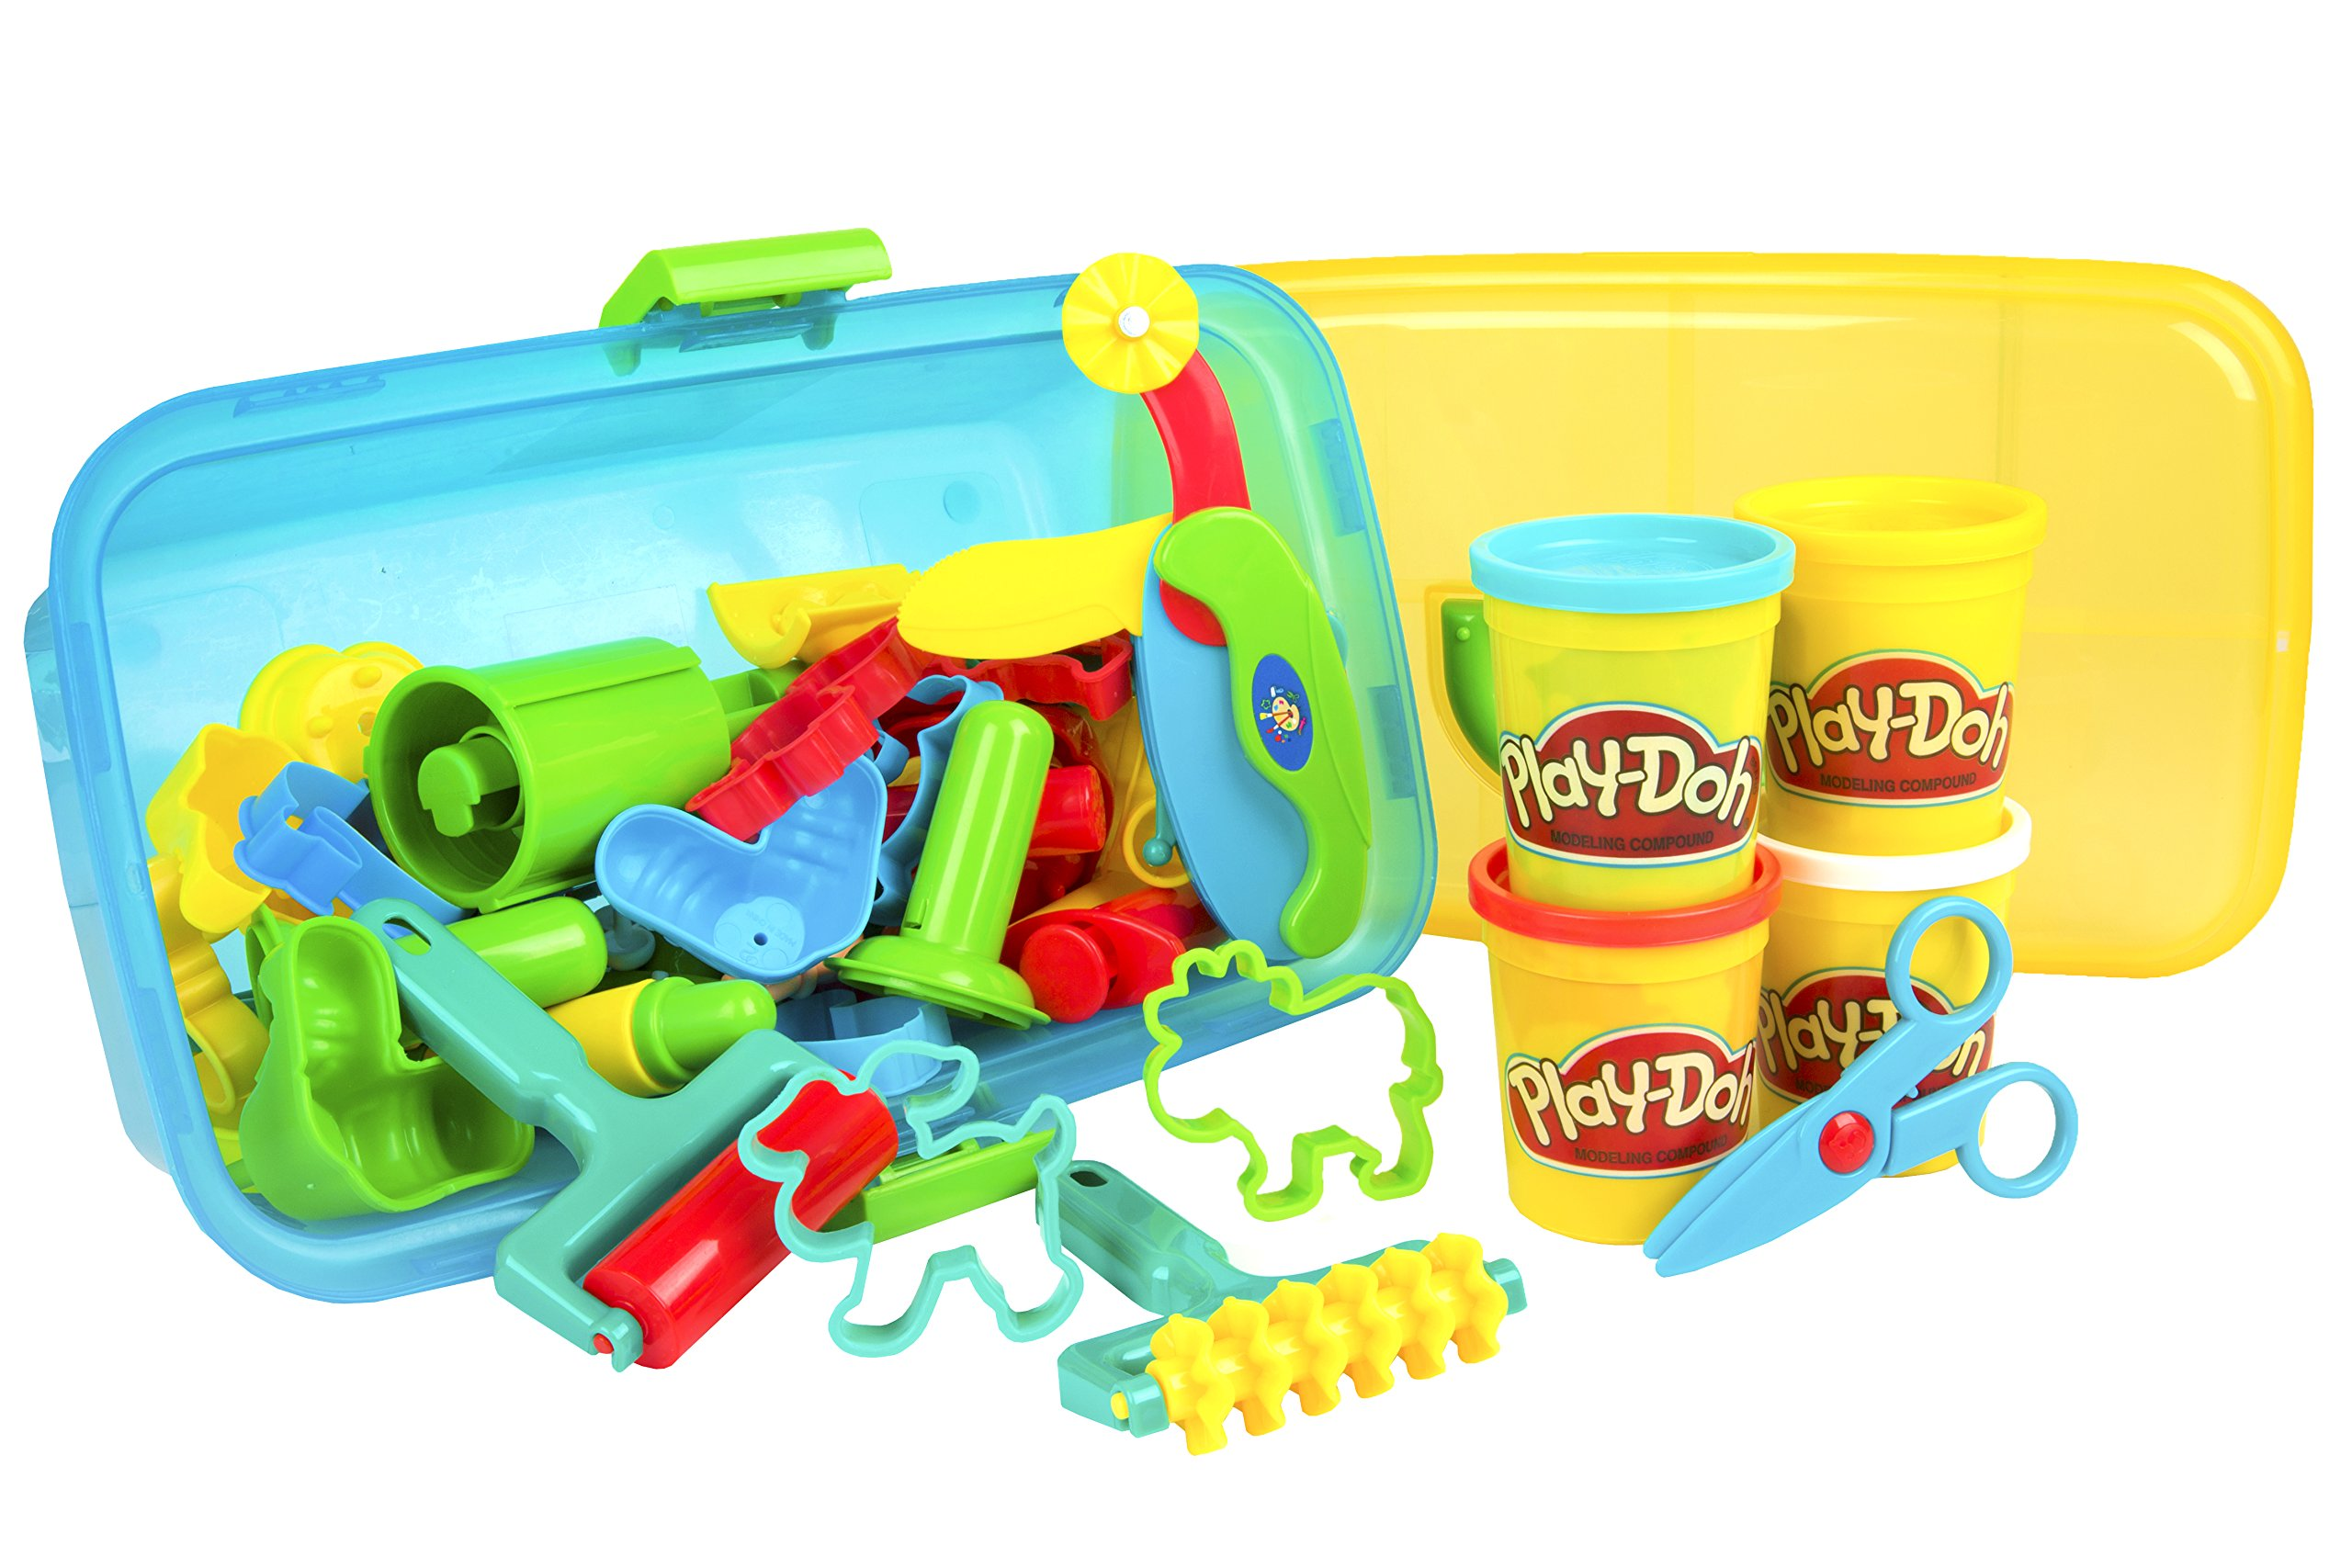 Galleon Cp Toys Clay Center With Four 5 Oz Play Doh